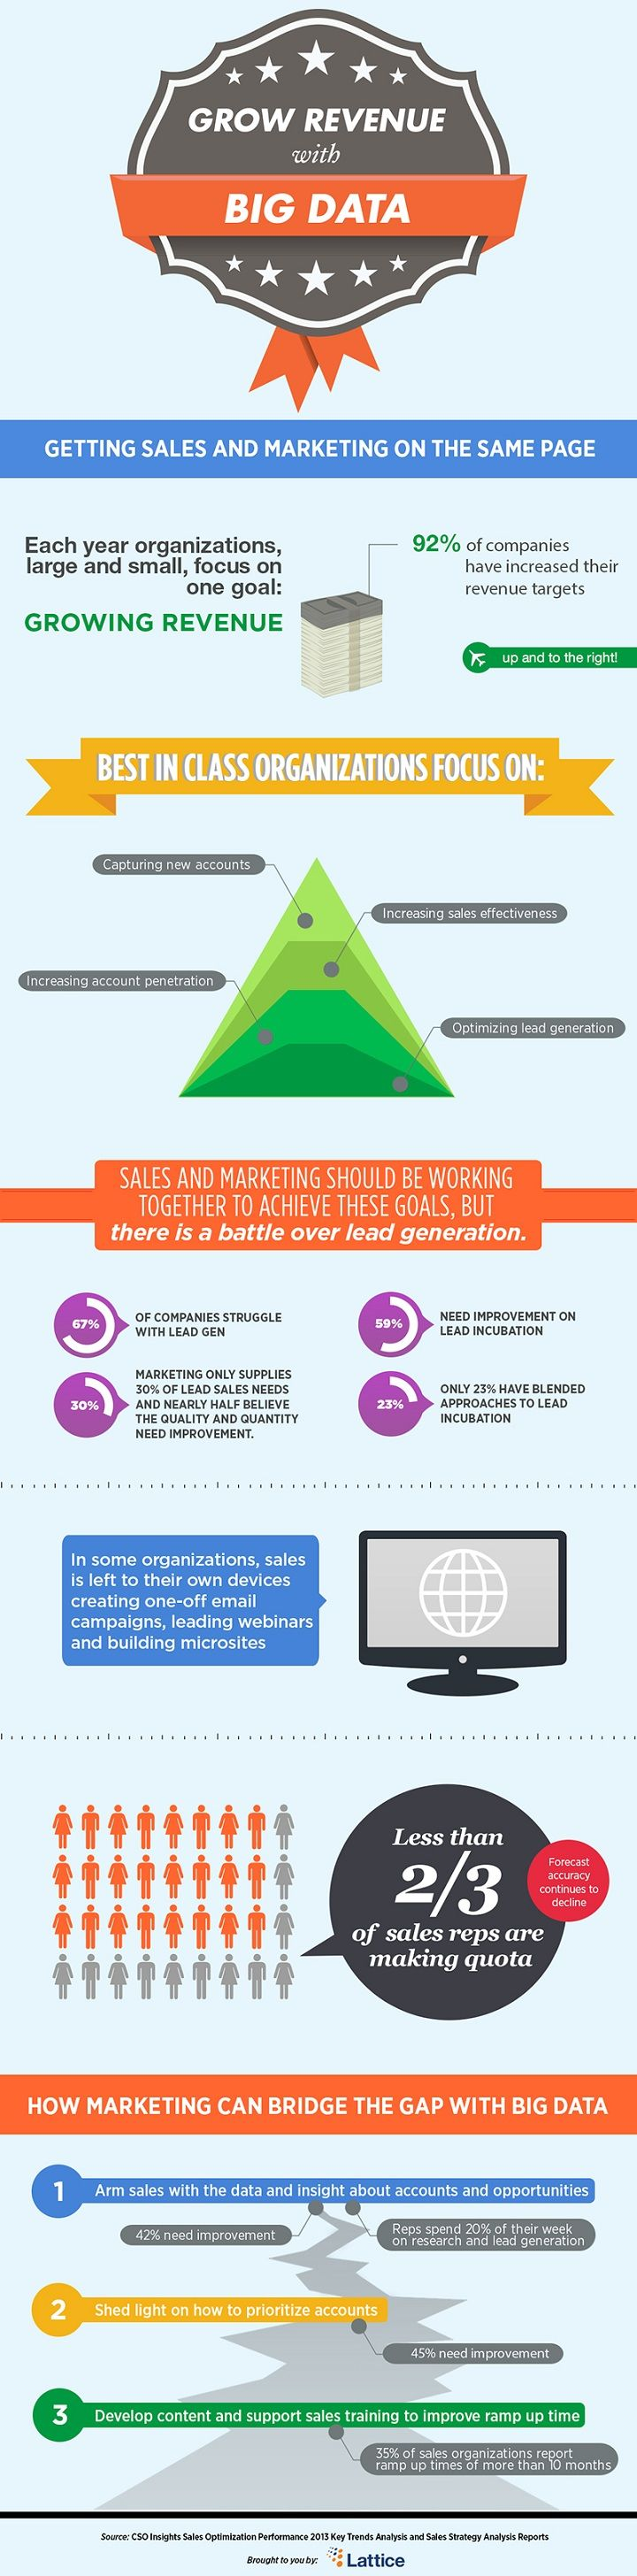 Some 92% of companies have increased their revenue targets this year, according to recent research from Lattice Engines.    Read more: http://www.marketingprofs.com/chirp/2013/10371/grow-revenue-with-big-data-sales-marketing-on-same-page-infographic#ixzz2OalidIe1